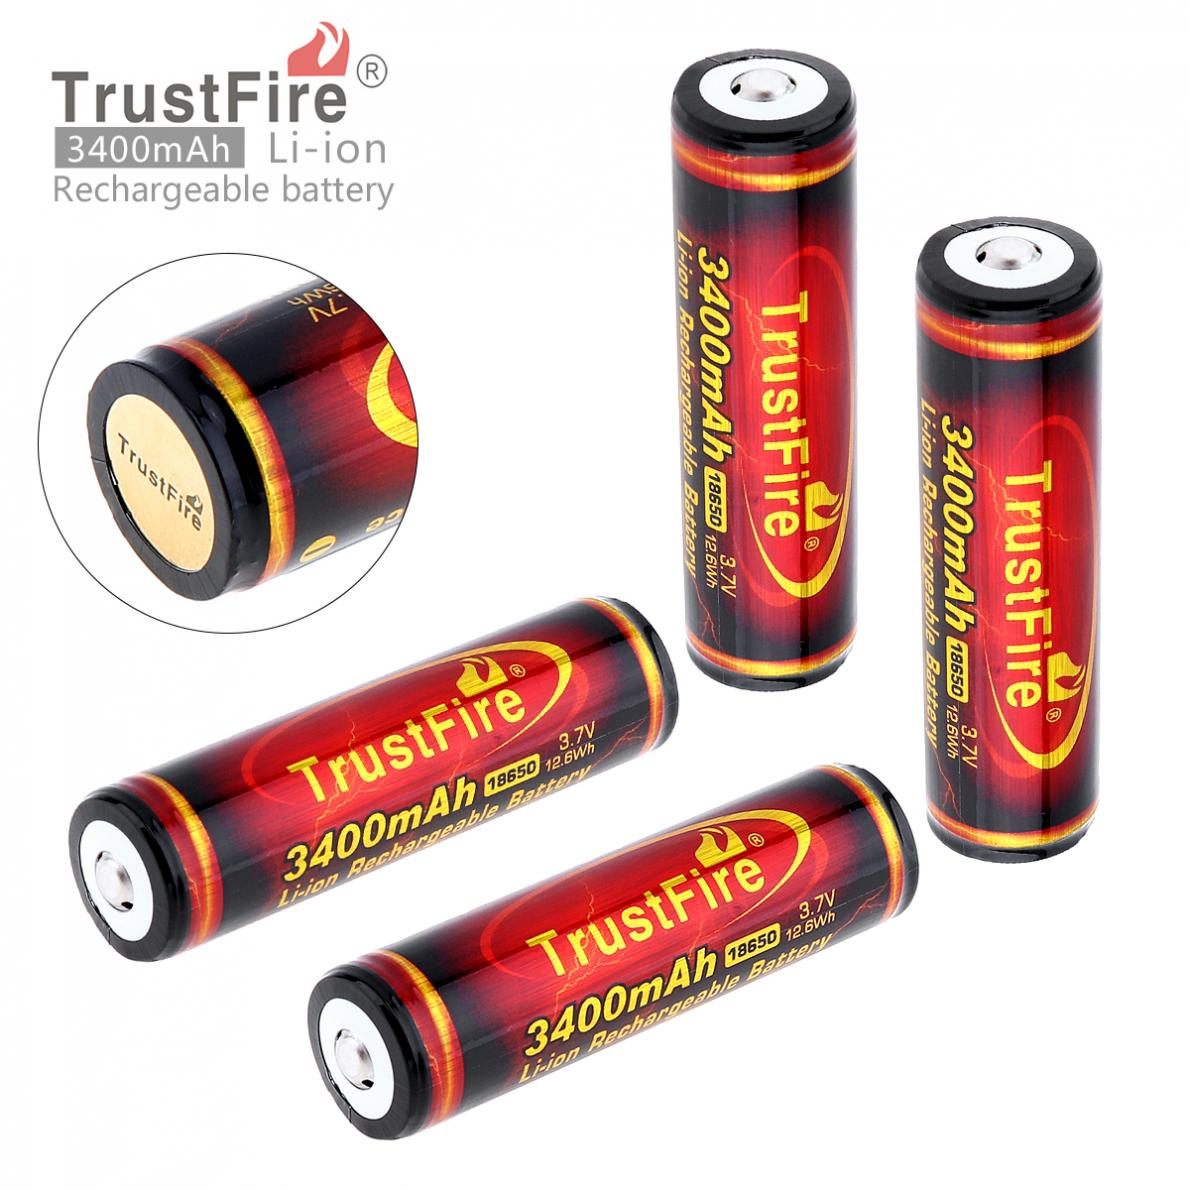 все цены на 4pcs TrustFire 3.7V 3400mAh 18650 Li-ion Rechargeable Battery High Capacity with Protected PCB for LED Flashlights /Headlamps